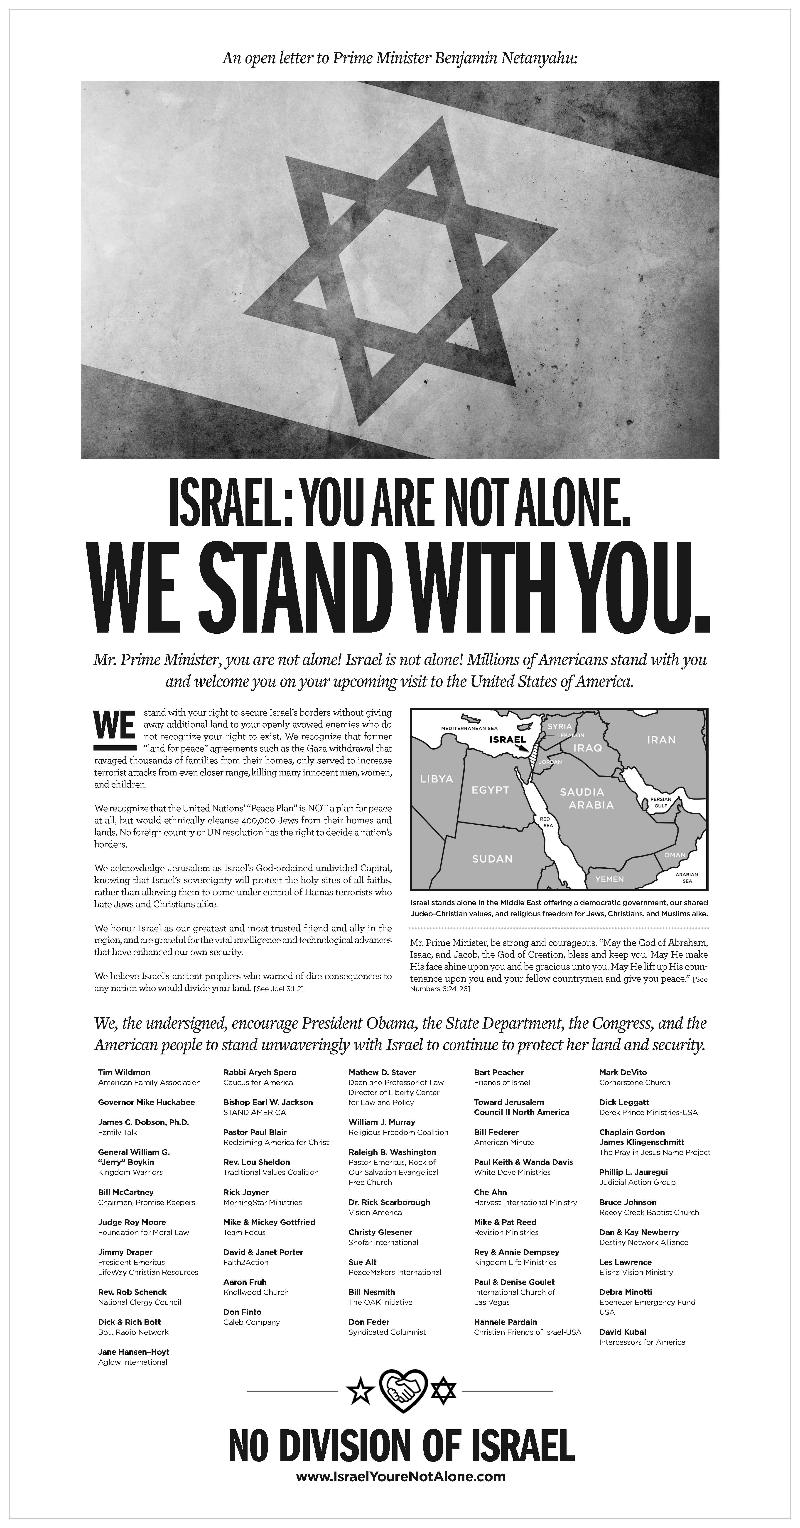 Wall Street Jounral ad supporting Israel